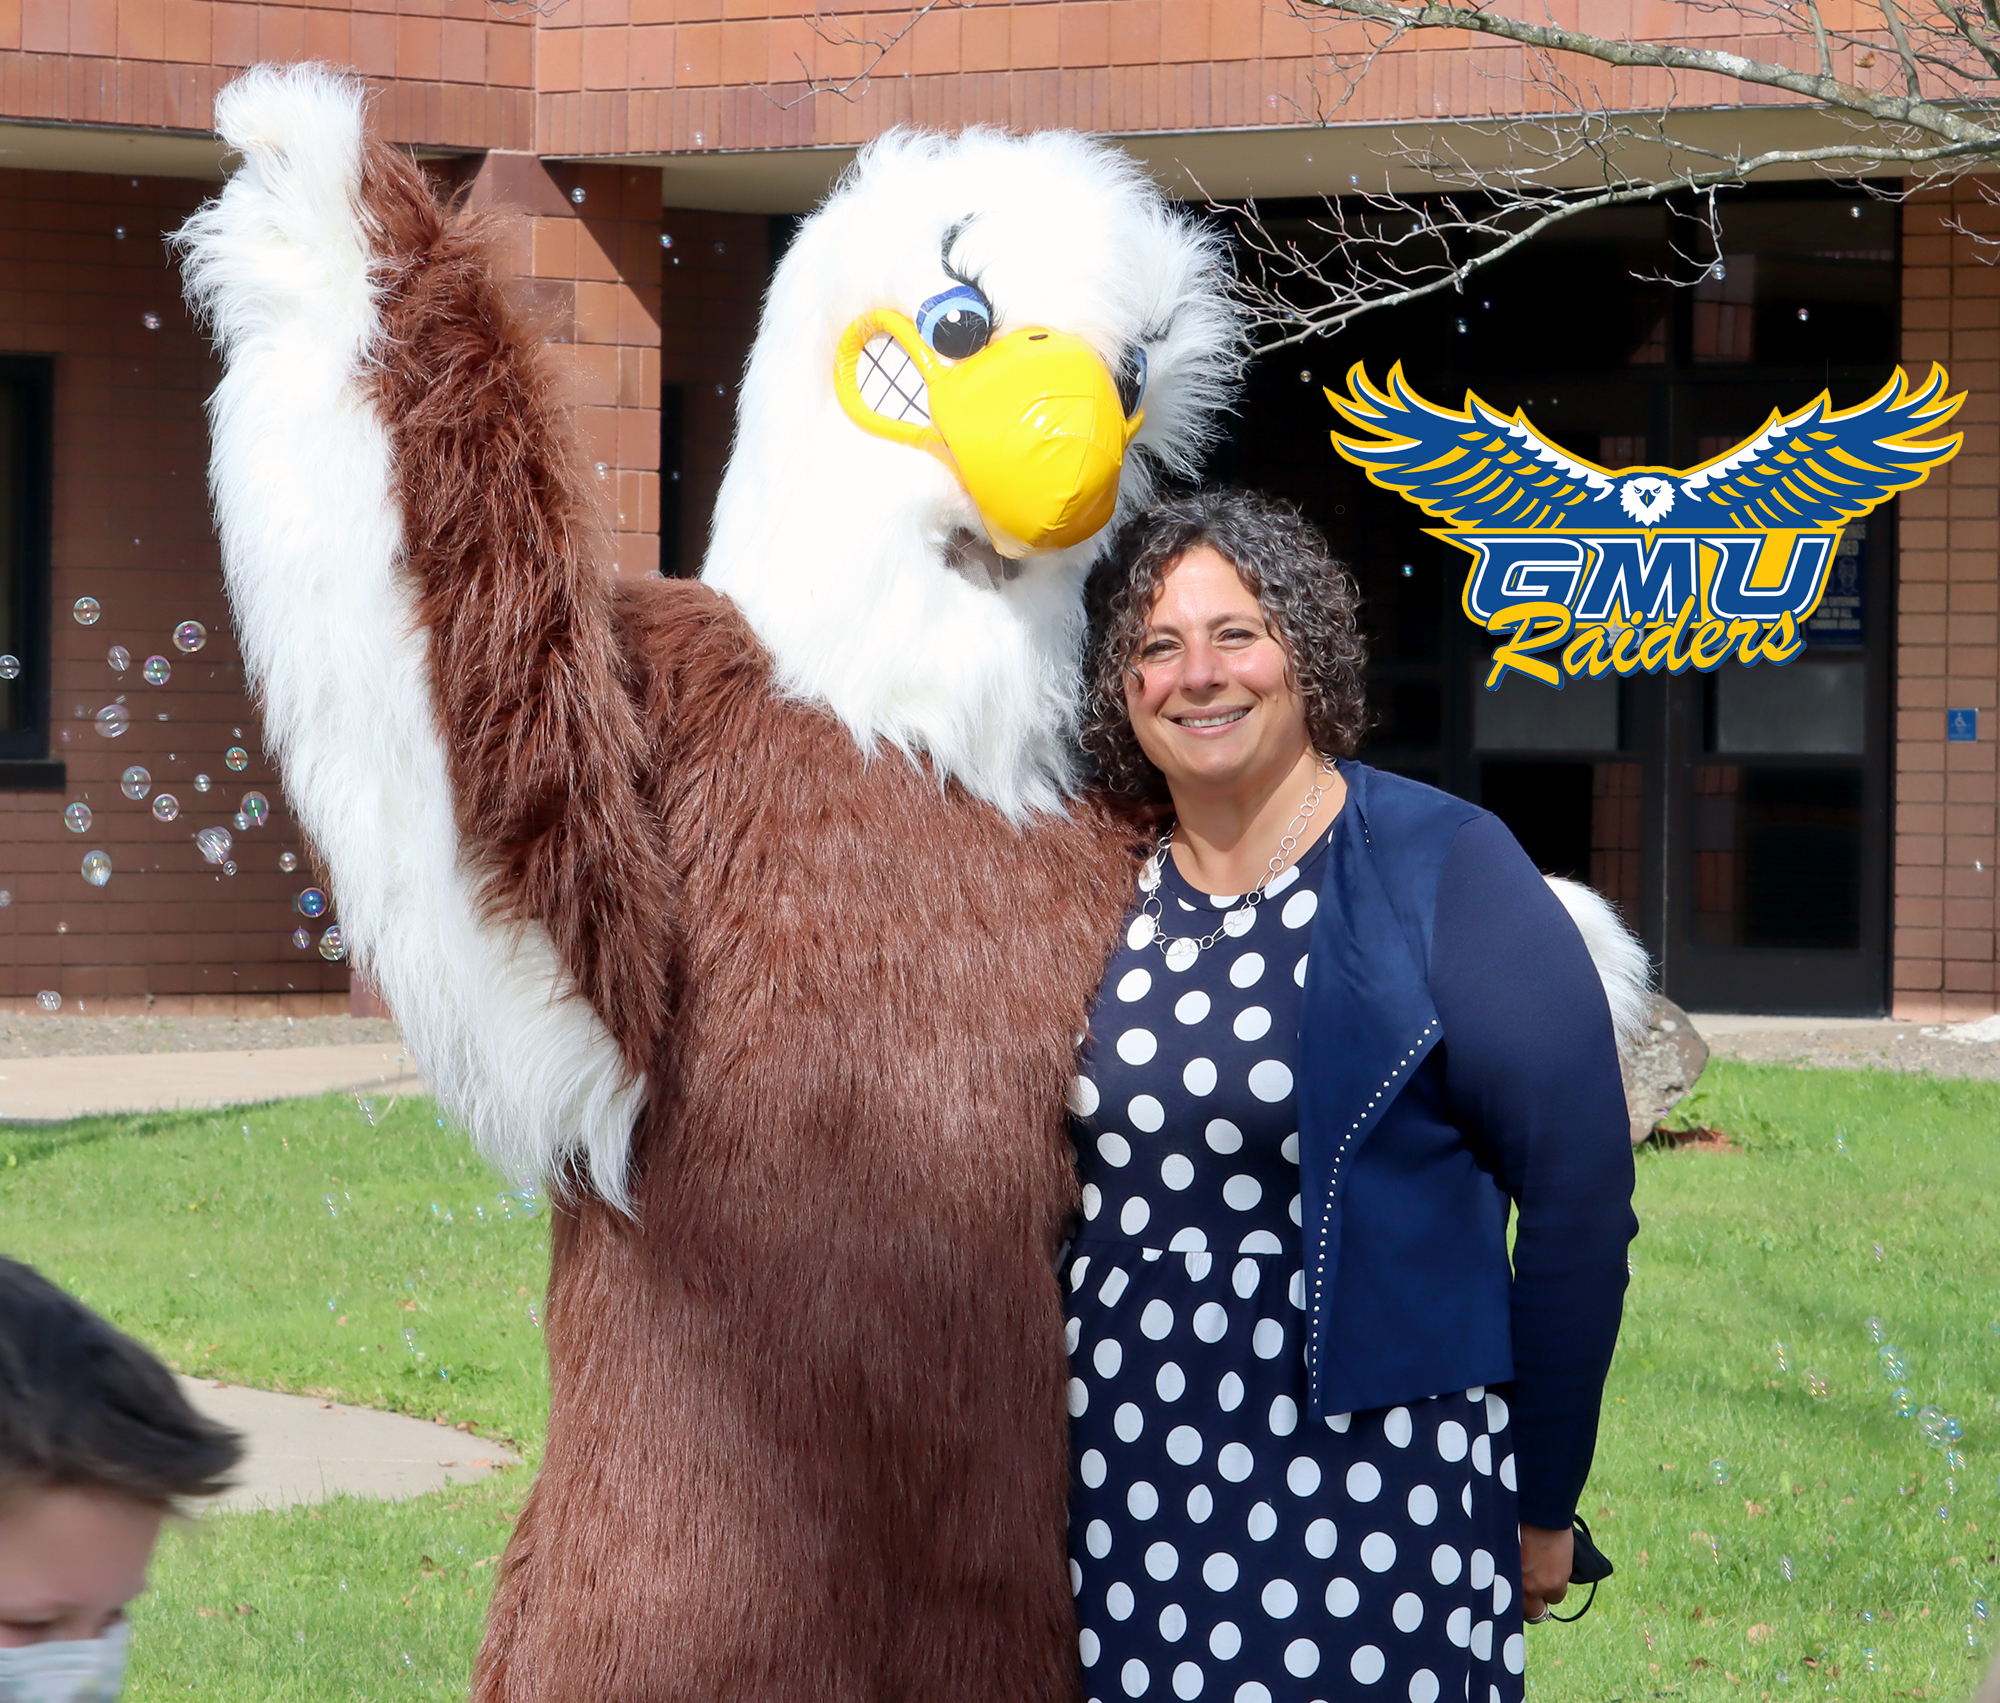 School mascot with Superintendent (10/2021)